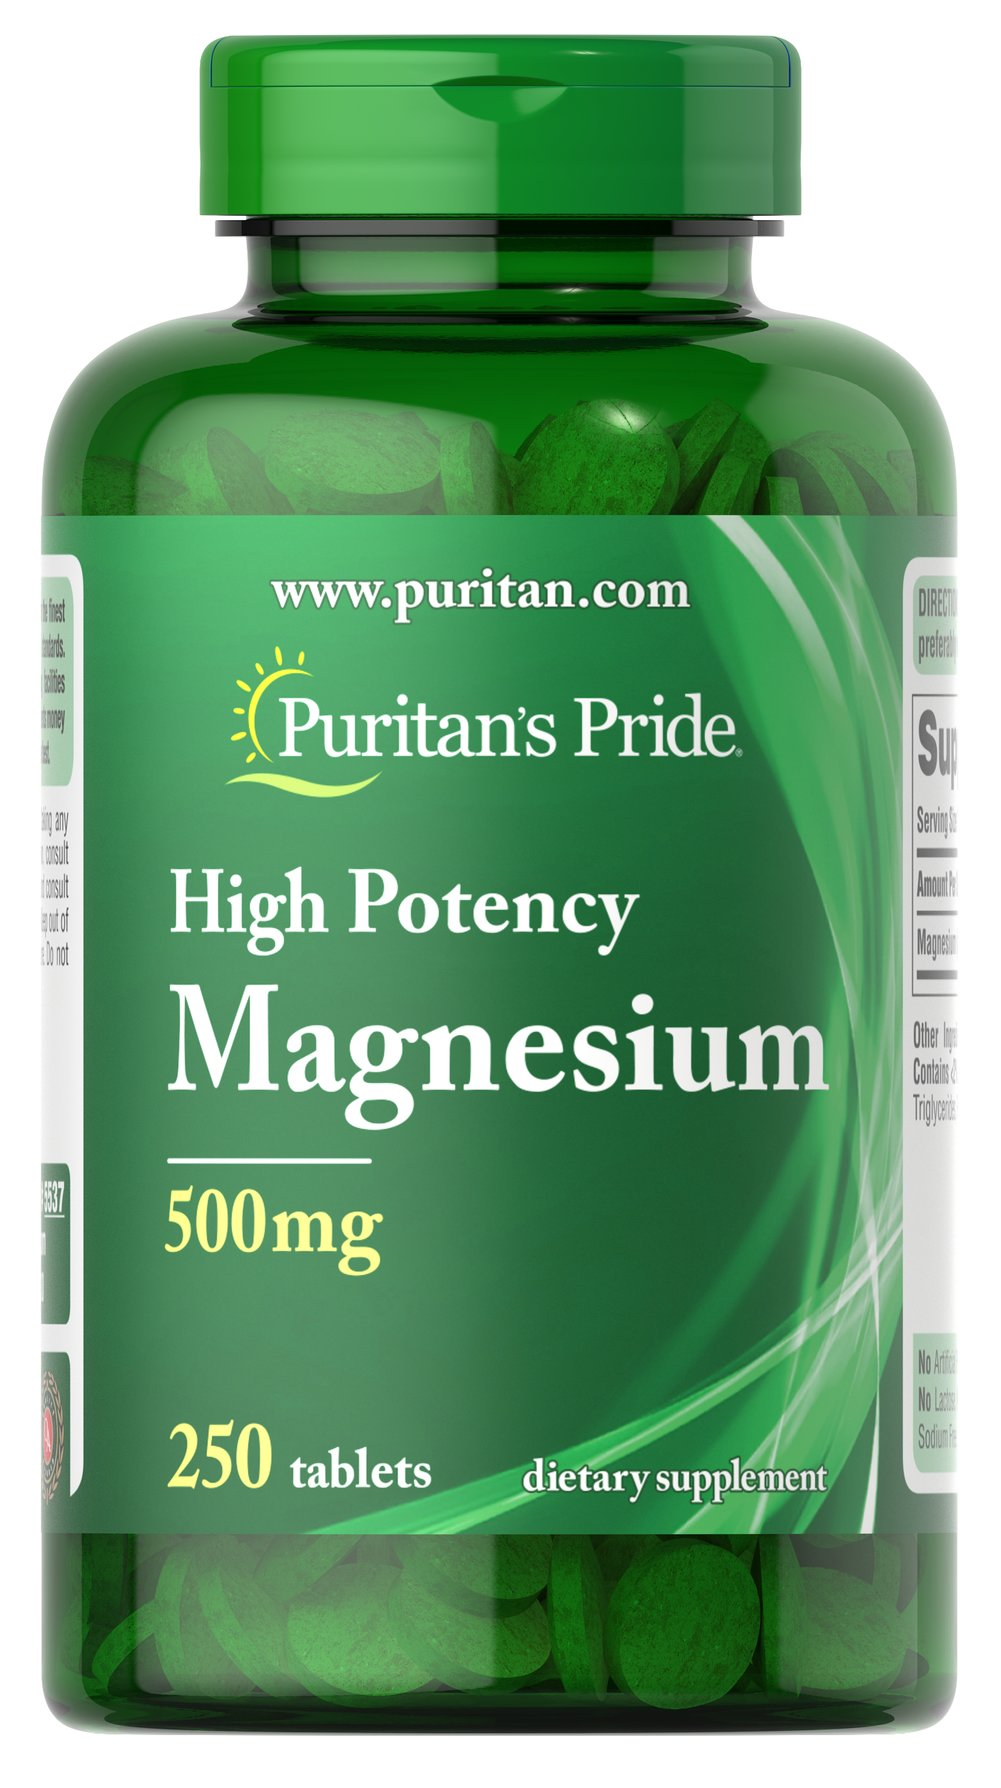 Magnesium 500 mg <p>Magnesium offers another option, besides Calcium, for supporting bone health.** Magnesium plays an essential role in maintaining bone mineralization, and is also involved in muscle contractions and nerve impulses.** Adults can take one caplet daily with a meal.</p> 250 Tablets 500 mg $19.58